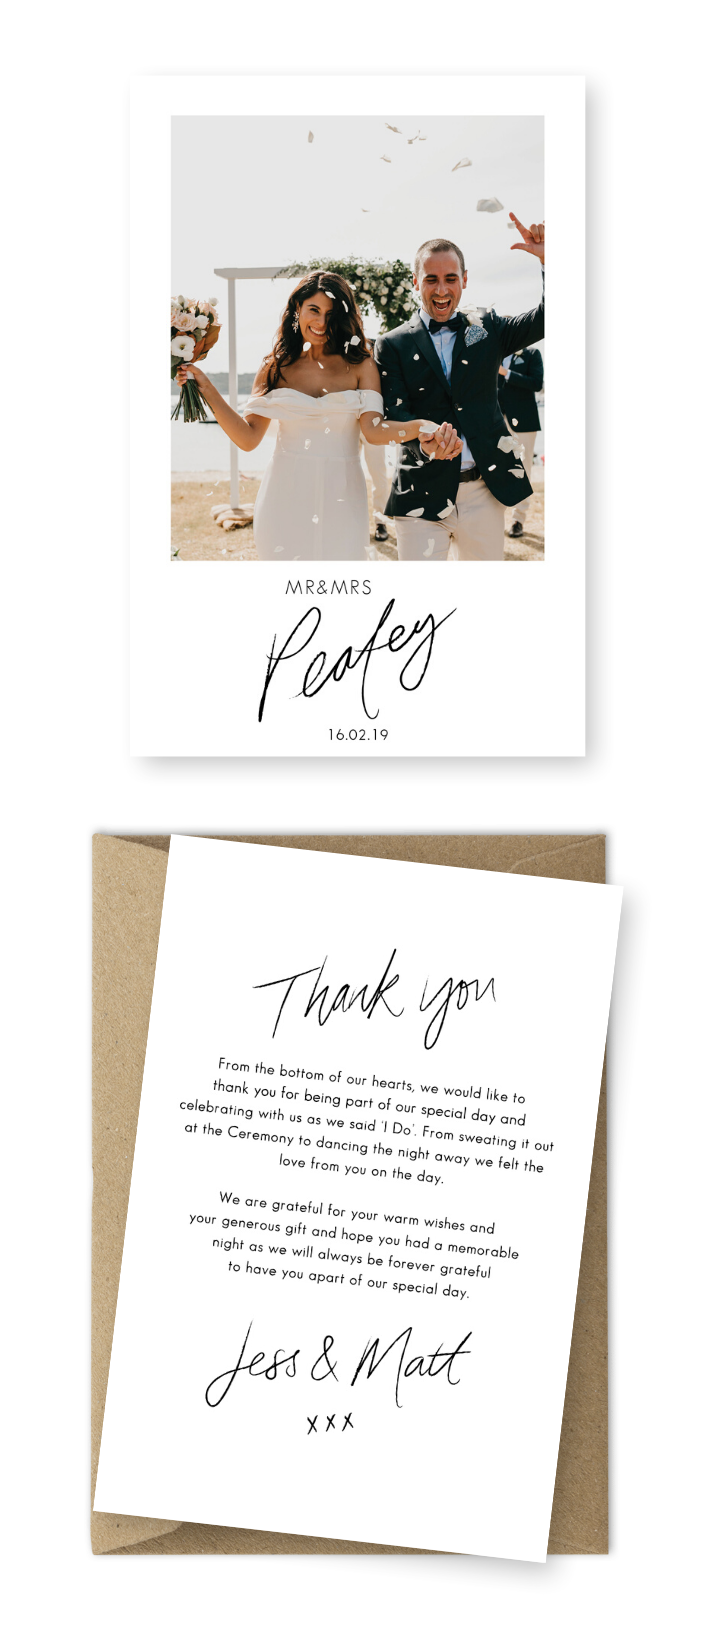 Wedding Thank You Messages from Bride and Groom Wedding